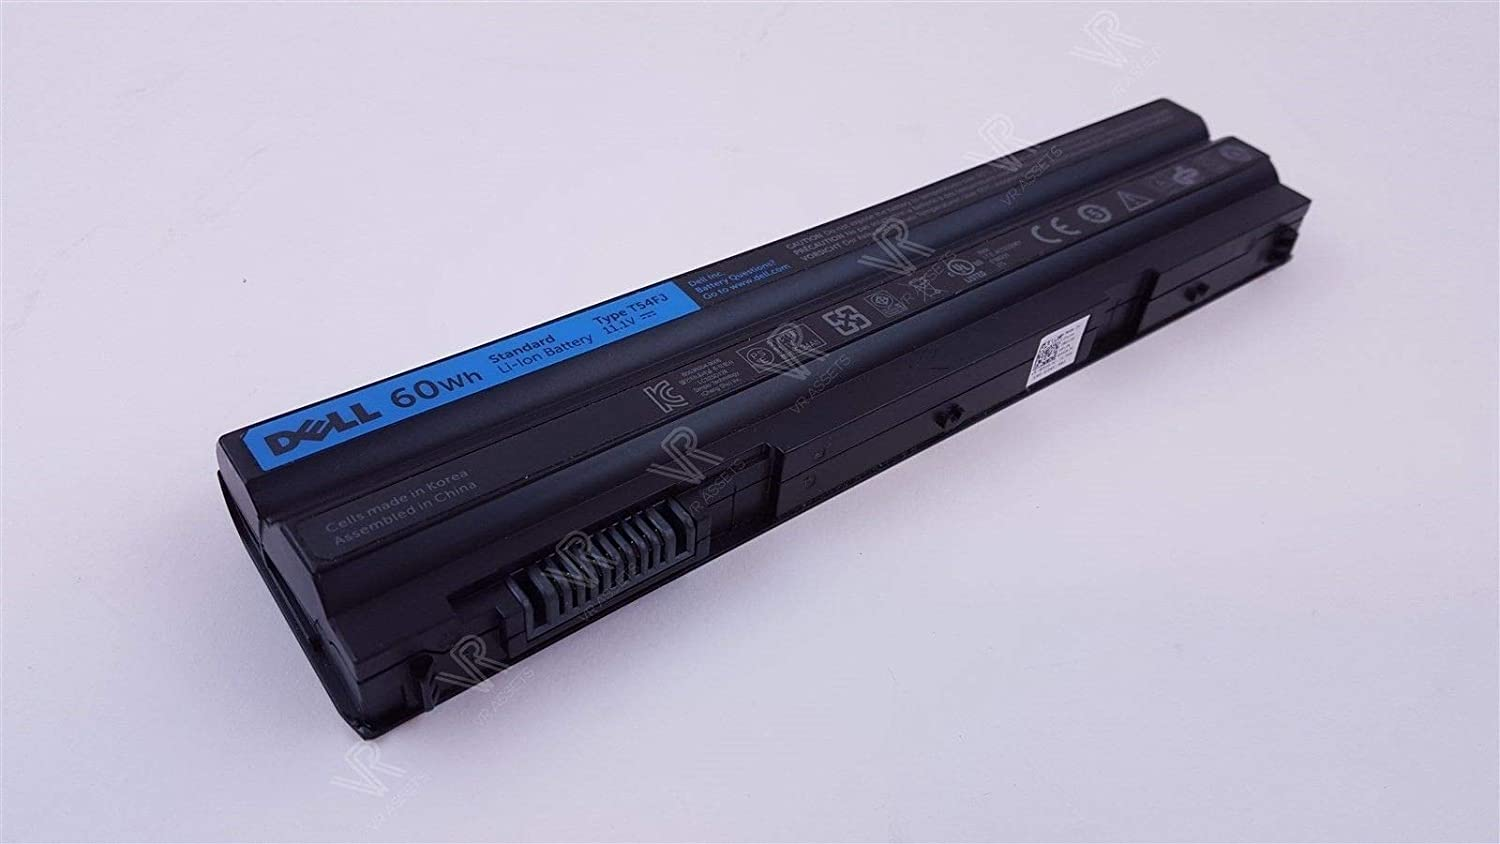 Dell Latitude E5430 E5530 E6430 E6530 ATG Laptop Battery - Dell Part T54FJ DHT0W 451-1197